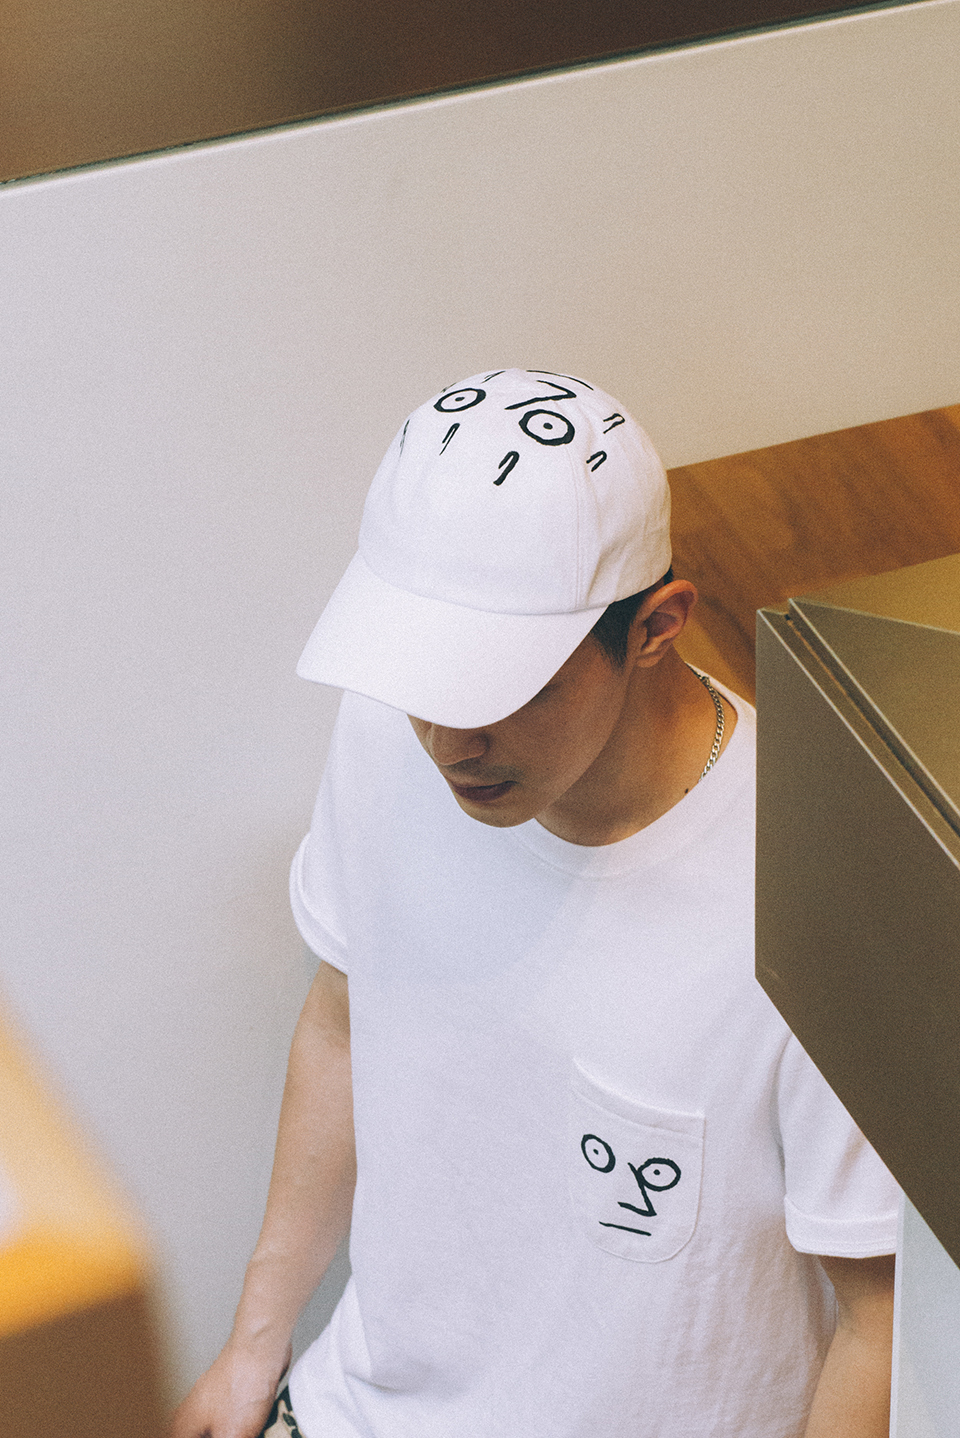 A cap and t-shirt from NouNou's new line